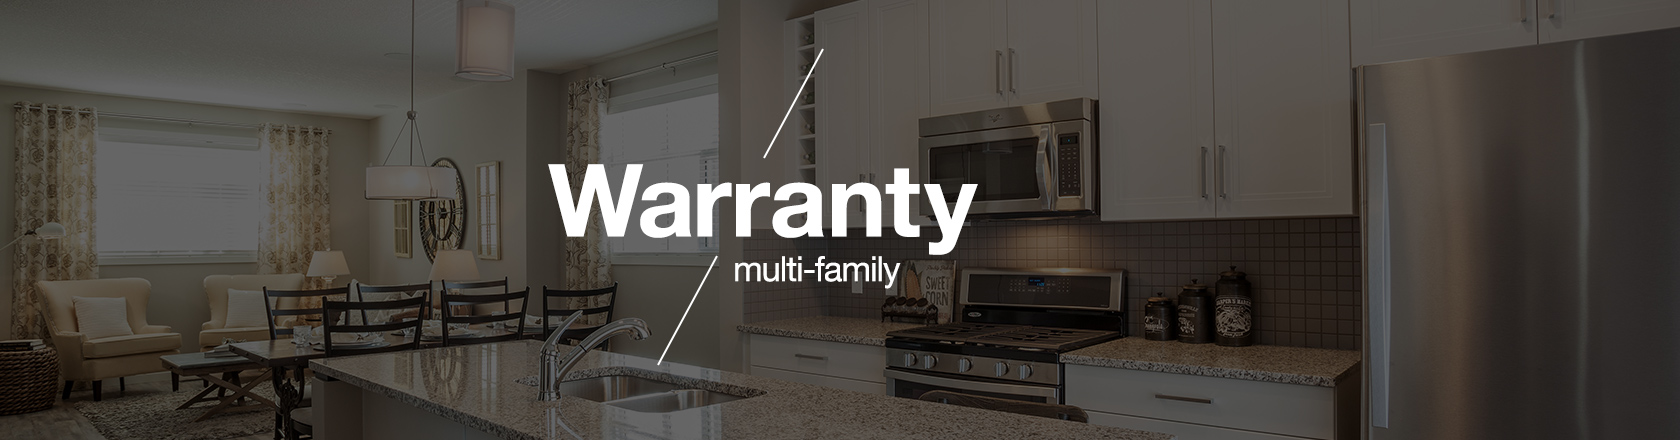 Multi-family Warranties banner